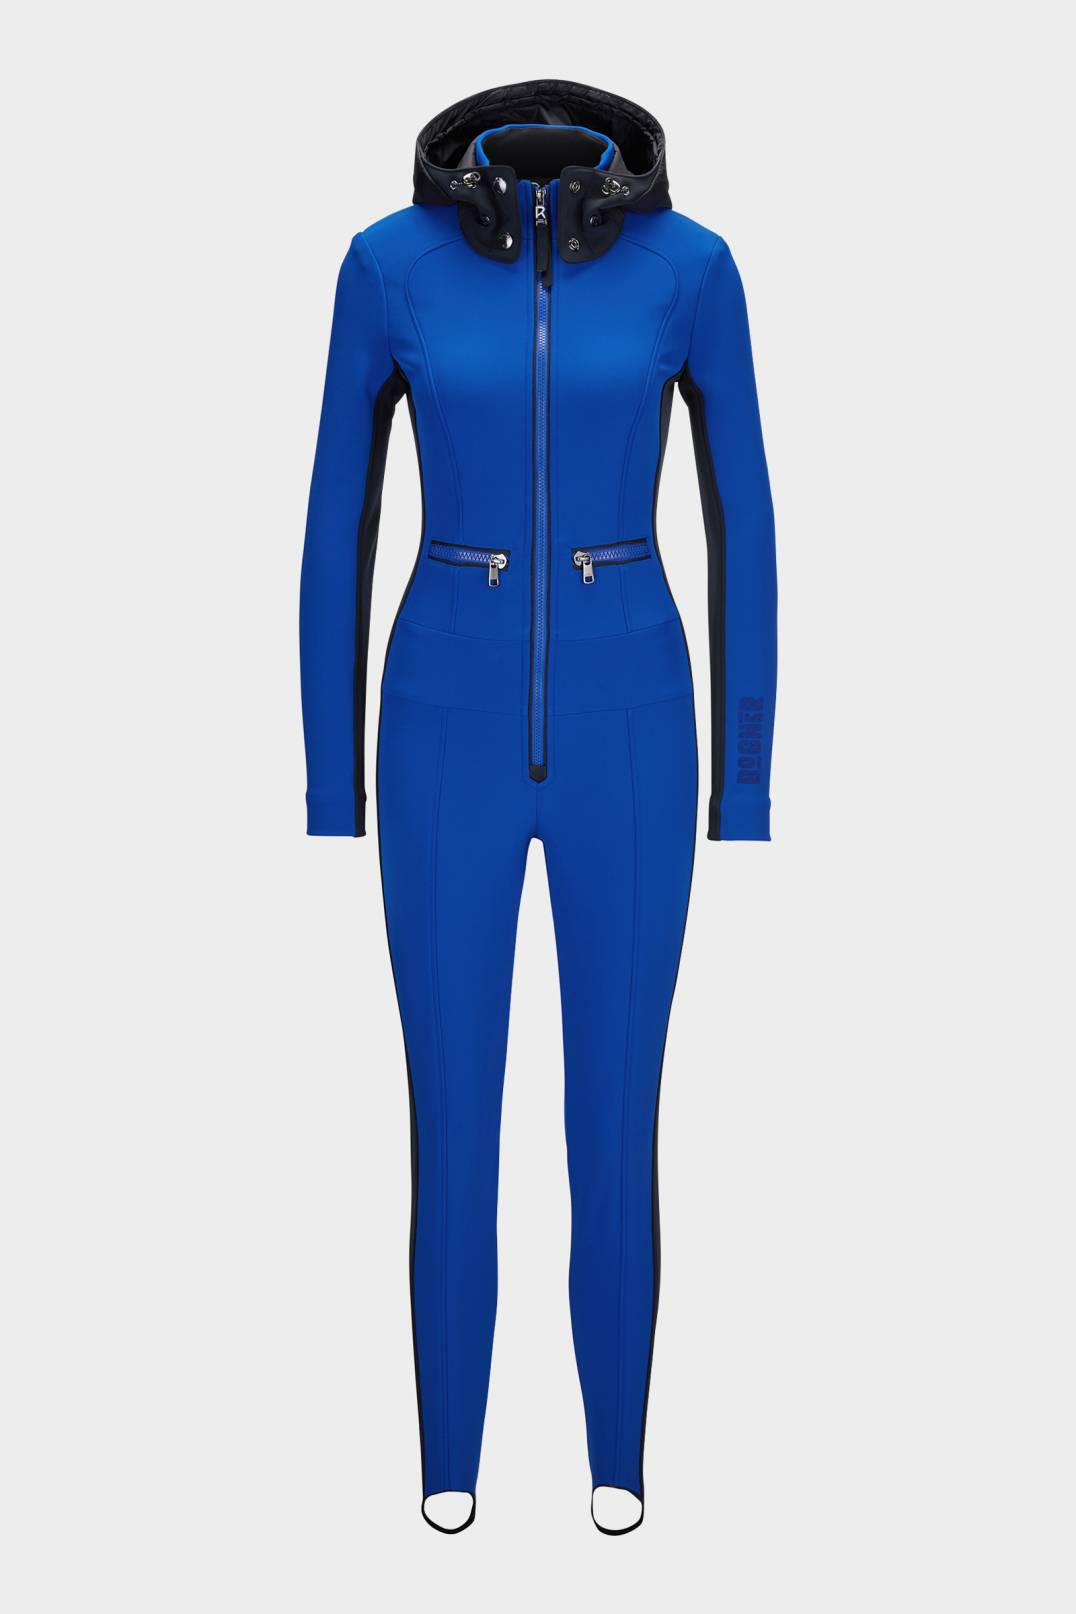 DELIZIA In boots ski suits - Blue